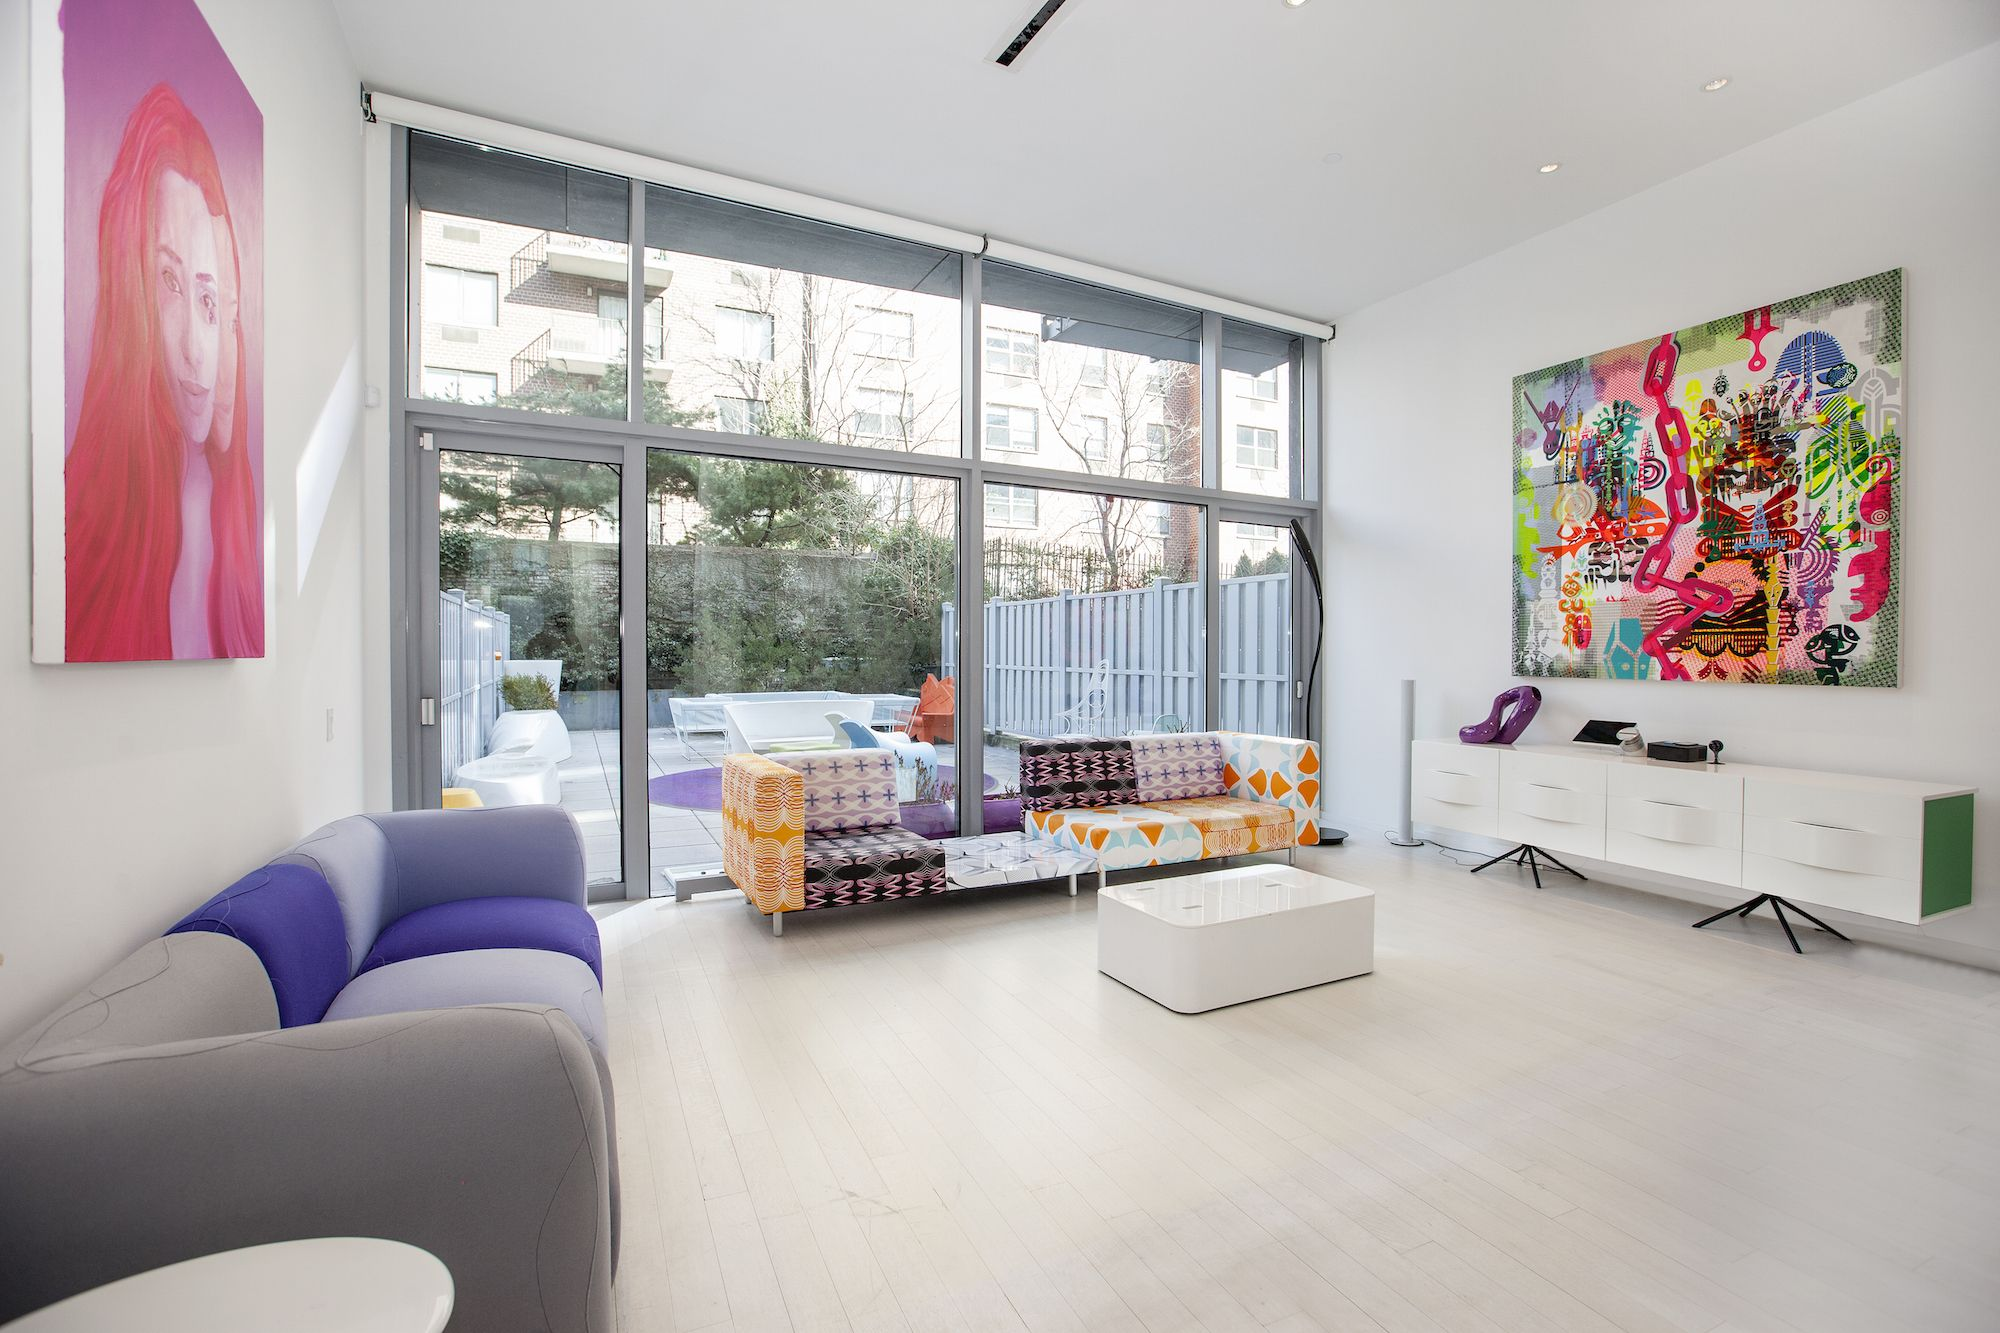 designer karim rashid just listed his colorful, modern apartment